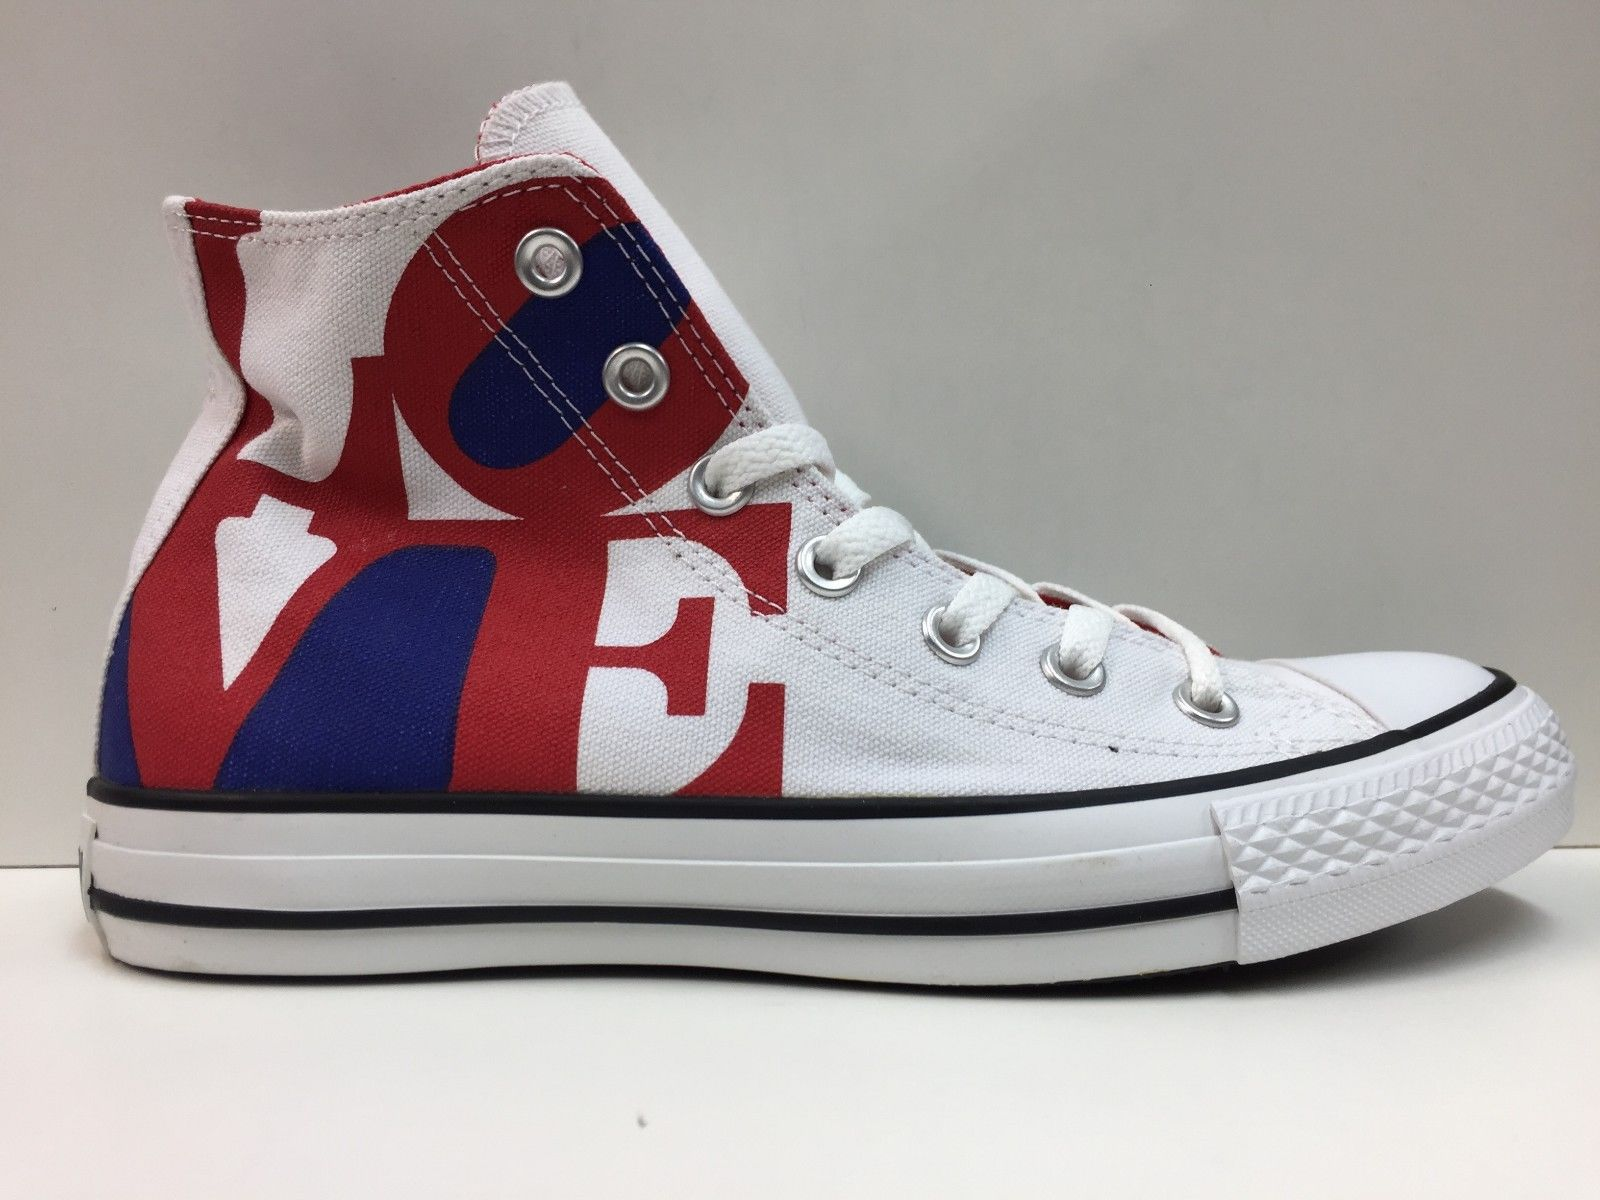 SCARPE SNEAKERS DONNA CONVERSE ALL STAR ORIGINAL CT ROBERT INDIANA HI 114025 NEW